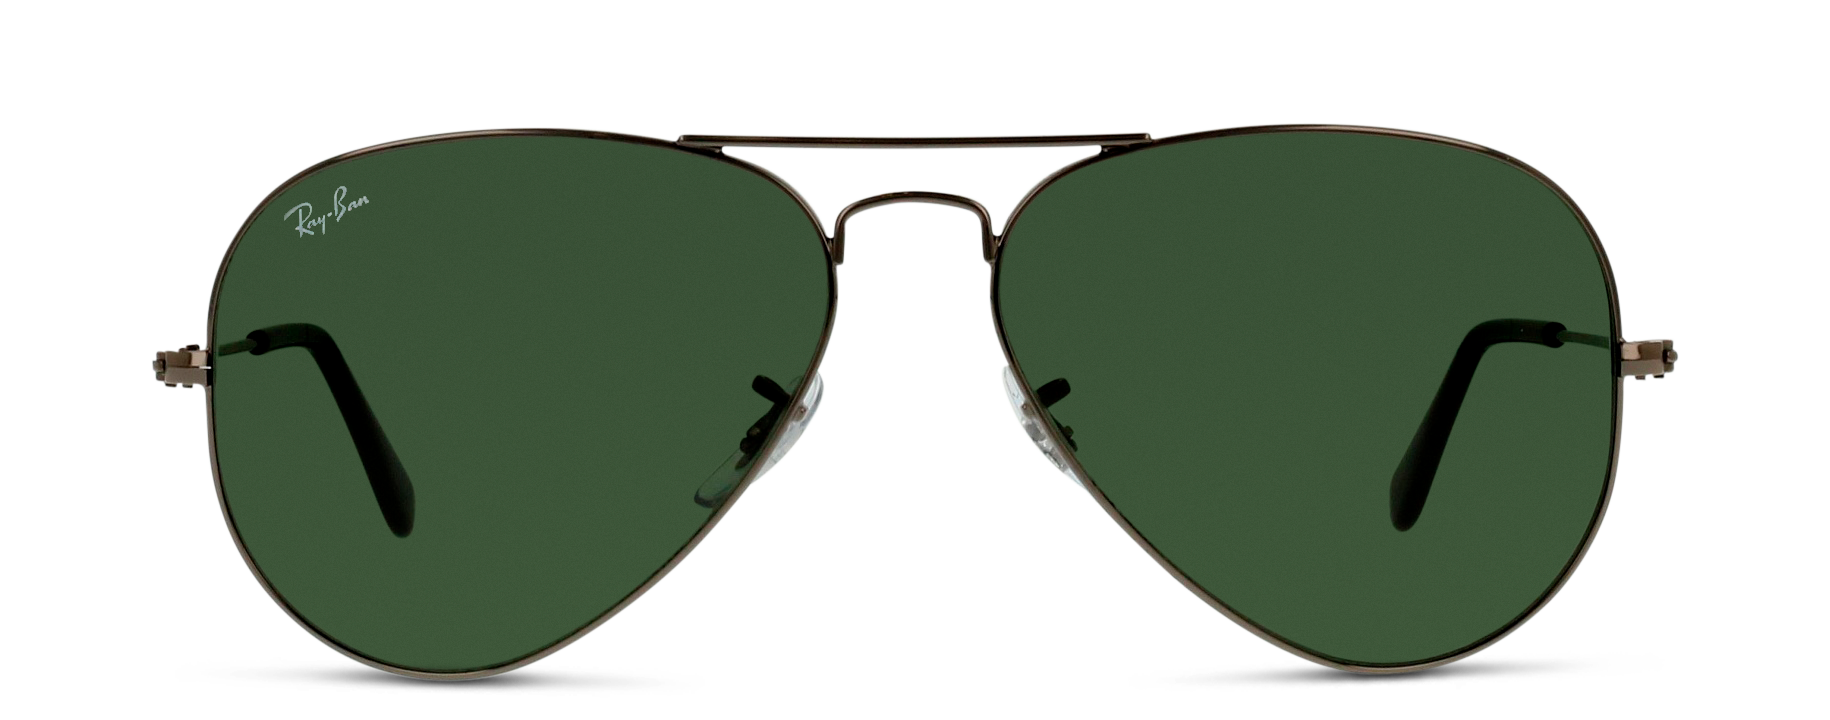 Front Ray-Ban Ray-Ban 3025 W0879 58/14 Grijs/Groen